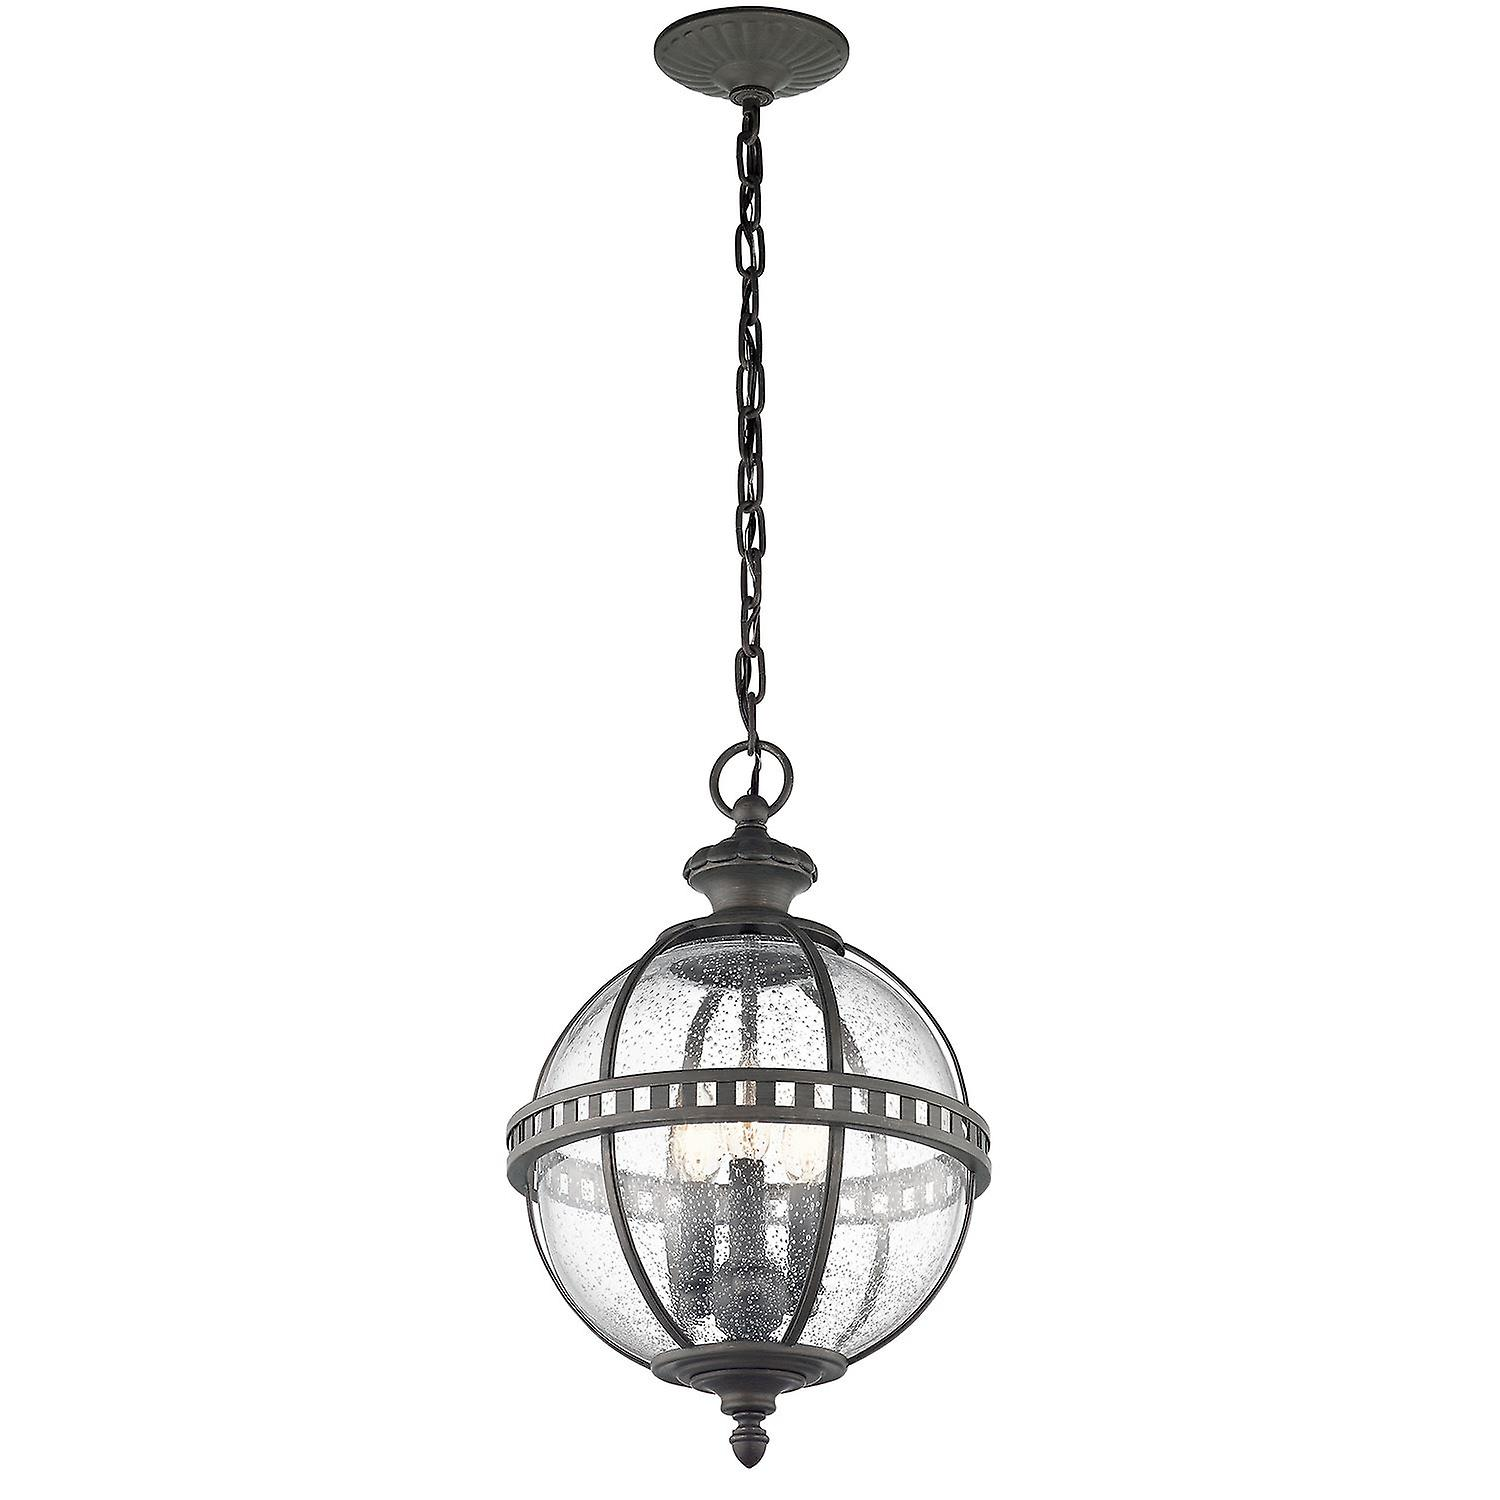 Elstead - 3 Light Chain Lantern - Londonderry Finish - KL HALLERON 8M